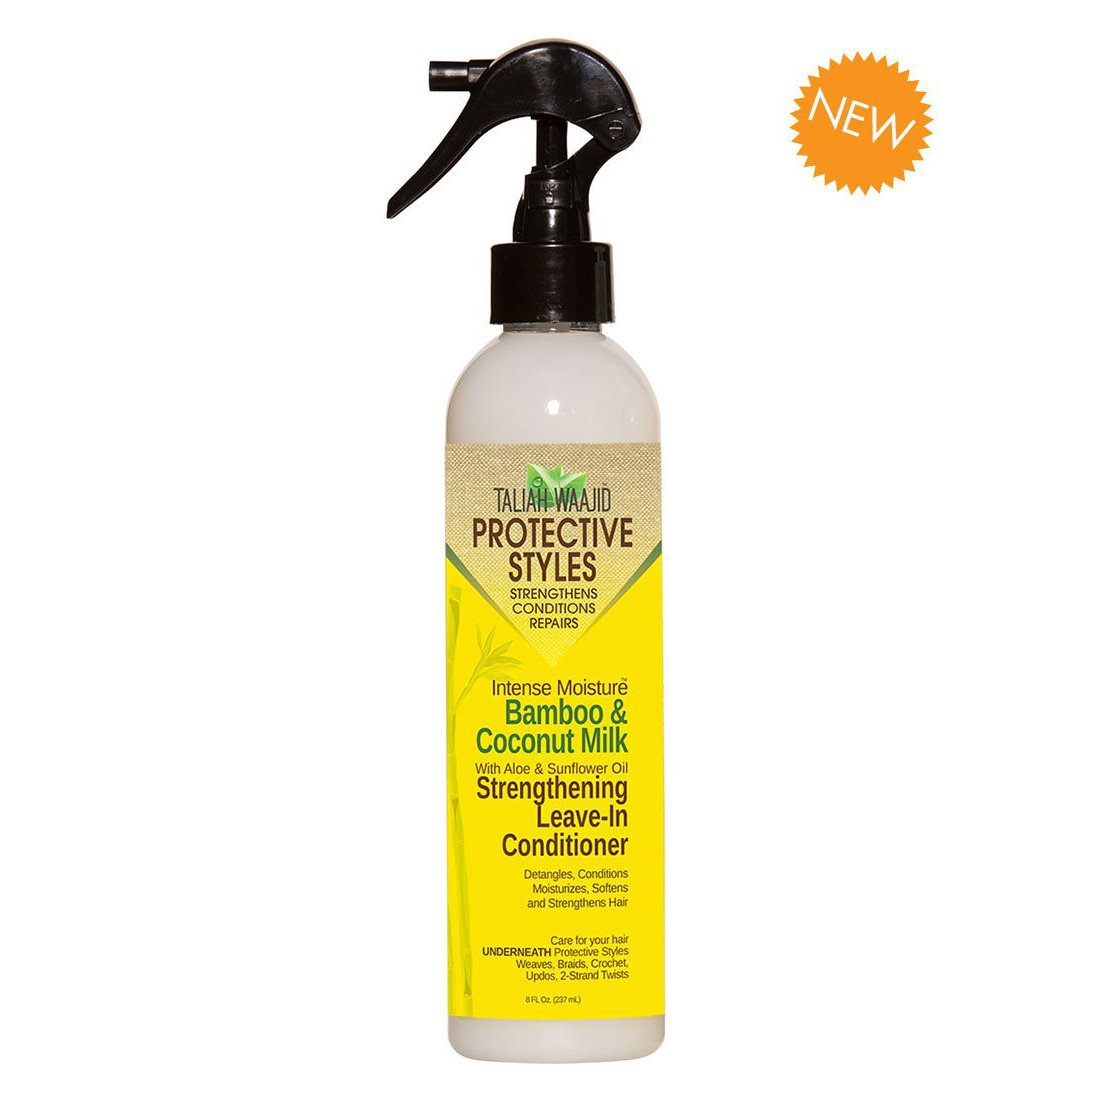 Taliah Waajid Protective Styles Bamboo and Coconut Milk Leave-in Conditioner